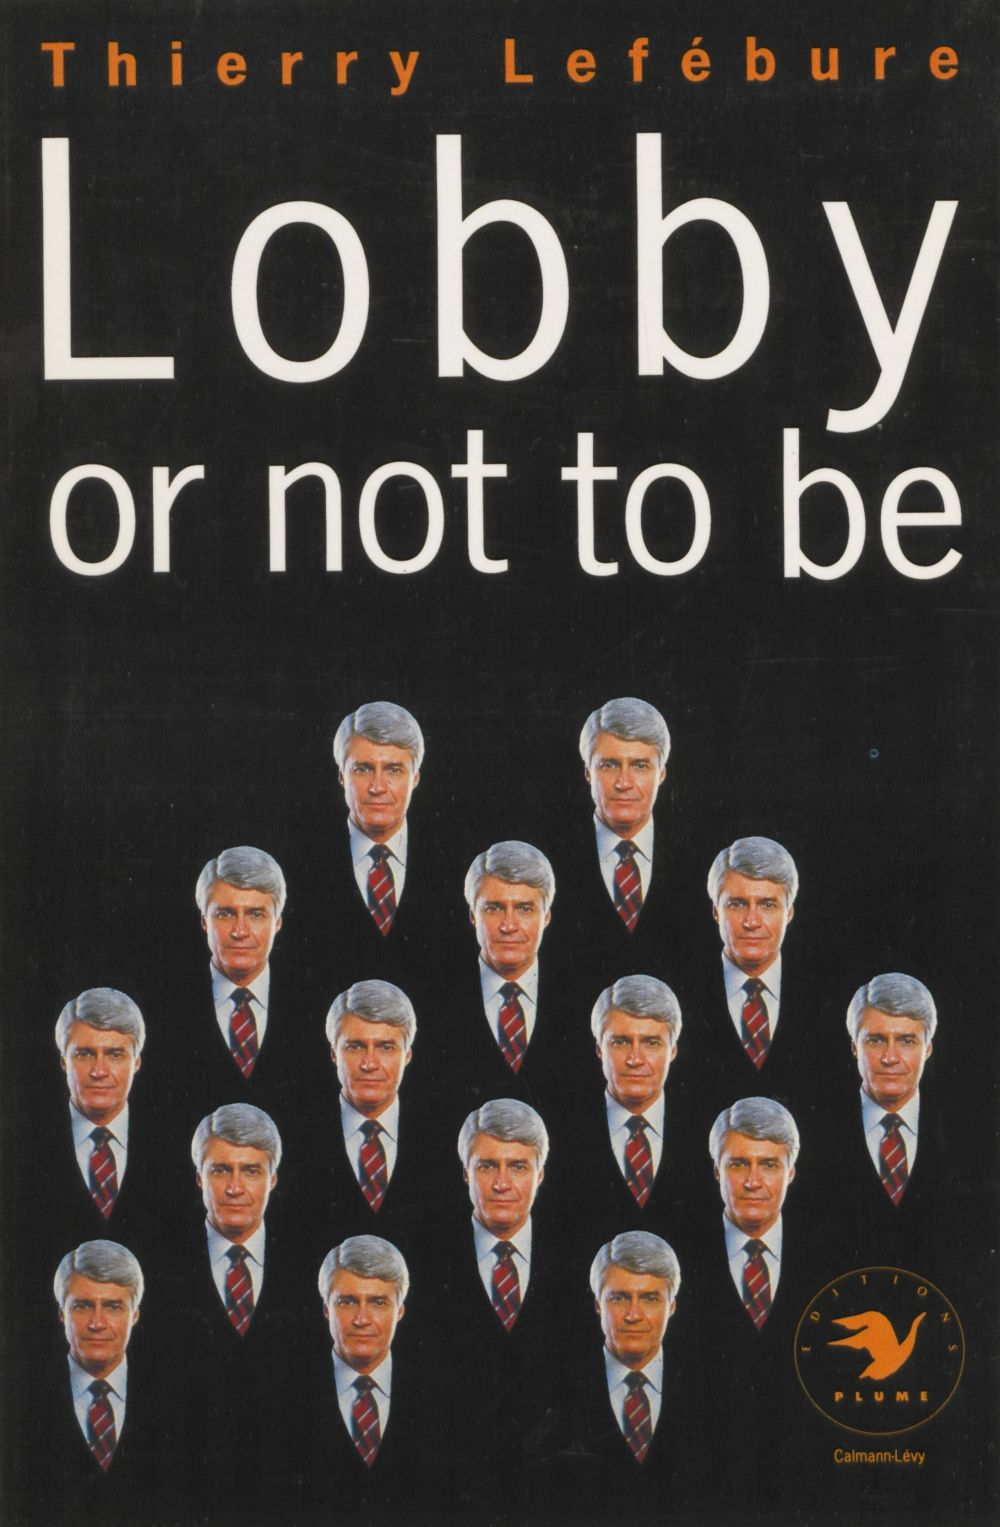 Lobby or not to be